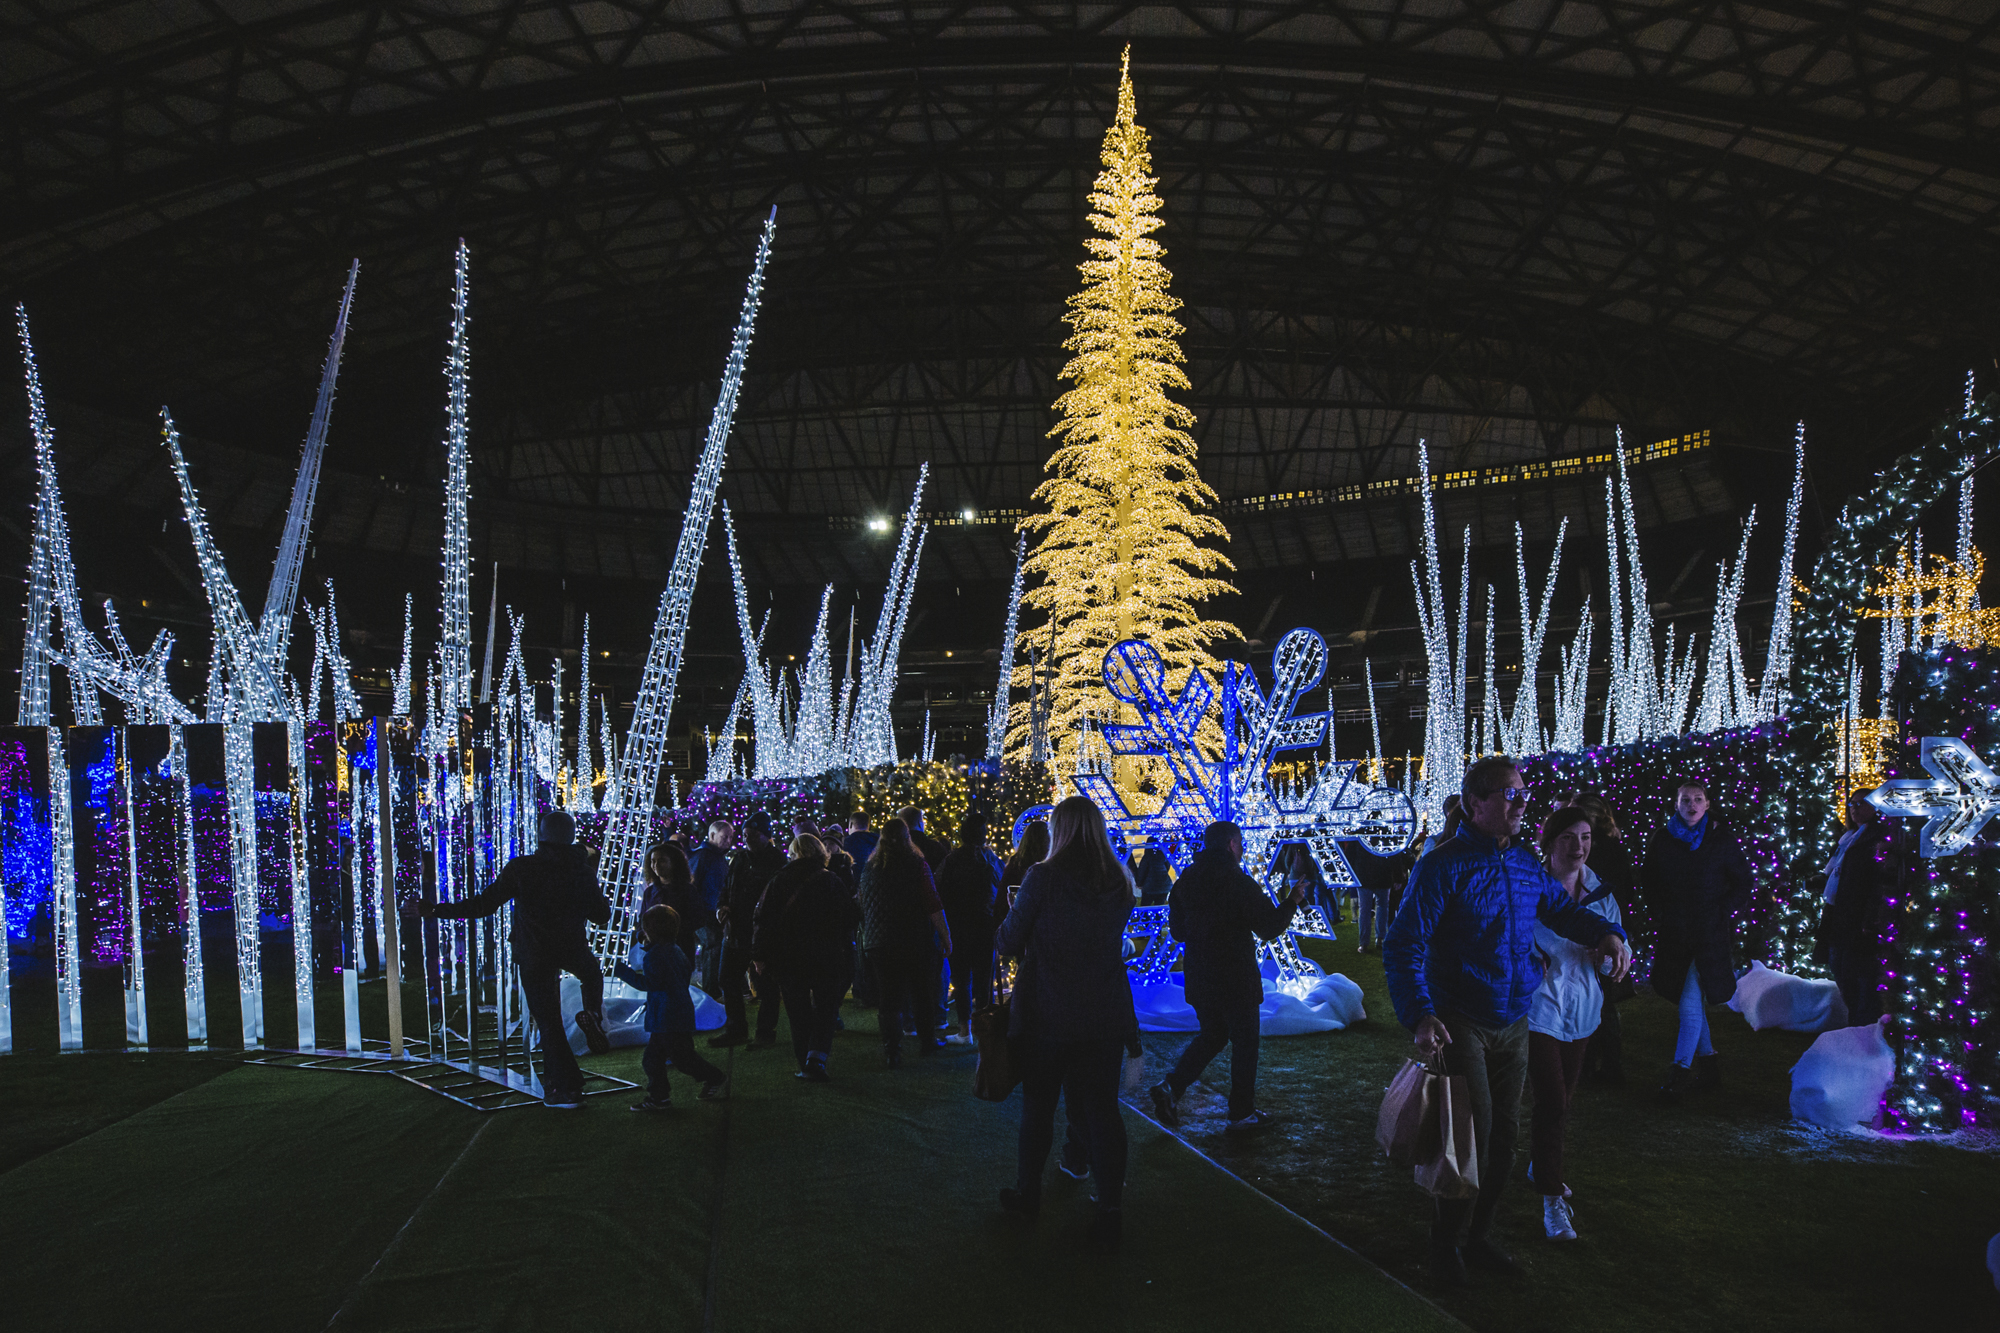 2018 Enchant Christmas at Safeco Field was a HIT. We can't wait to see what 2019 brings! (Image: Sunita Martini / Seattle Refined)